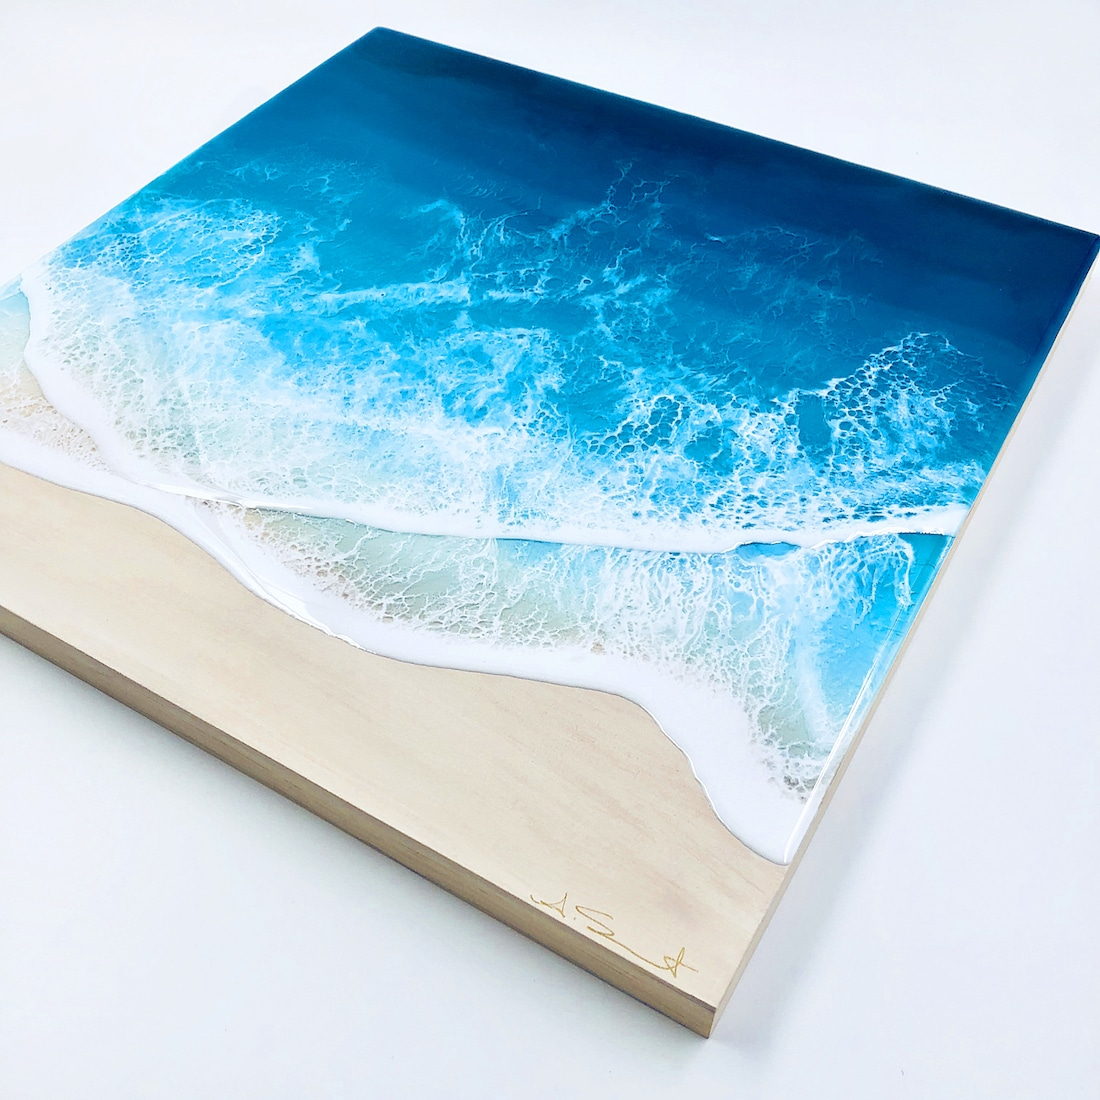 Photorealistic Waves